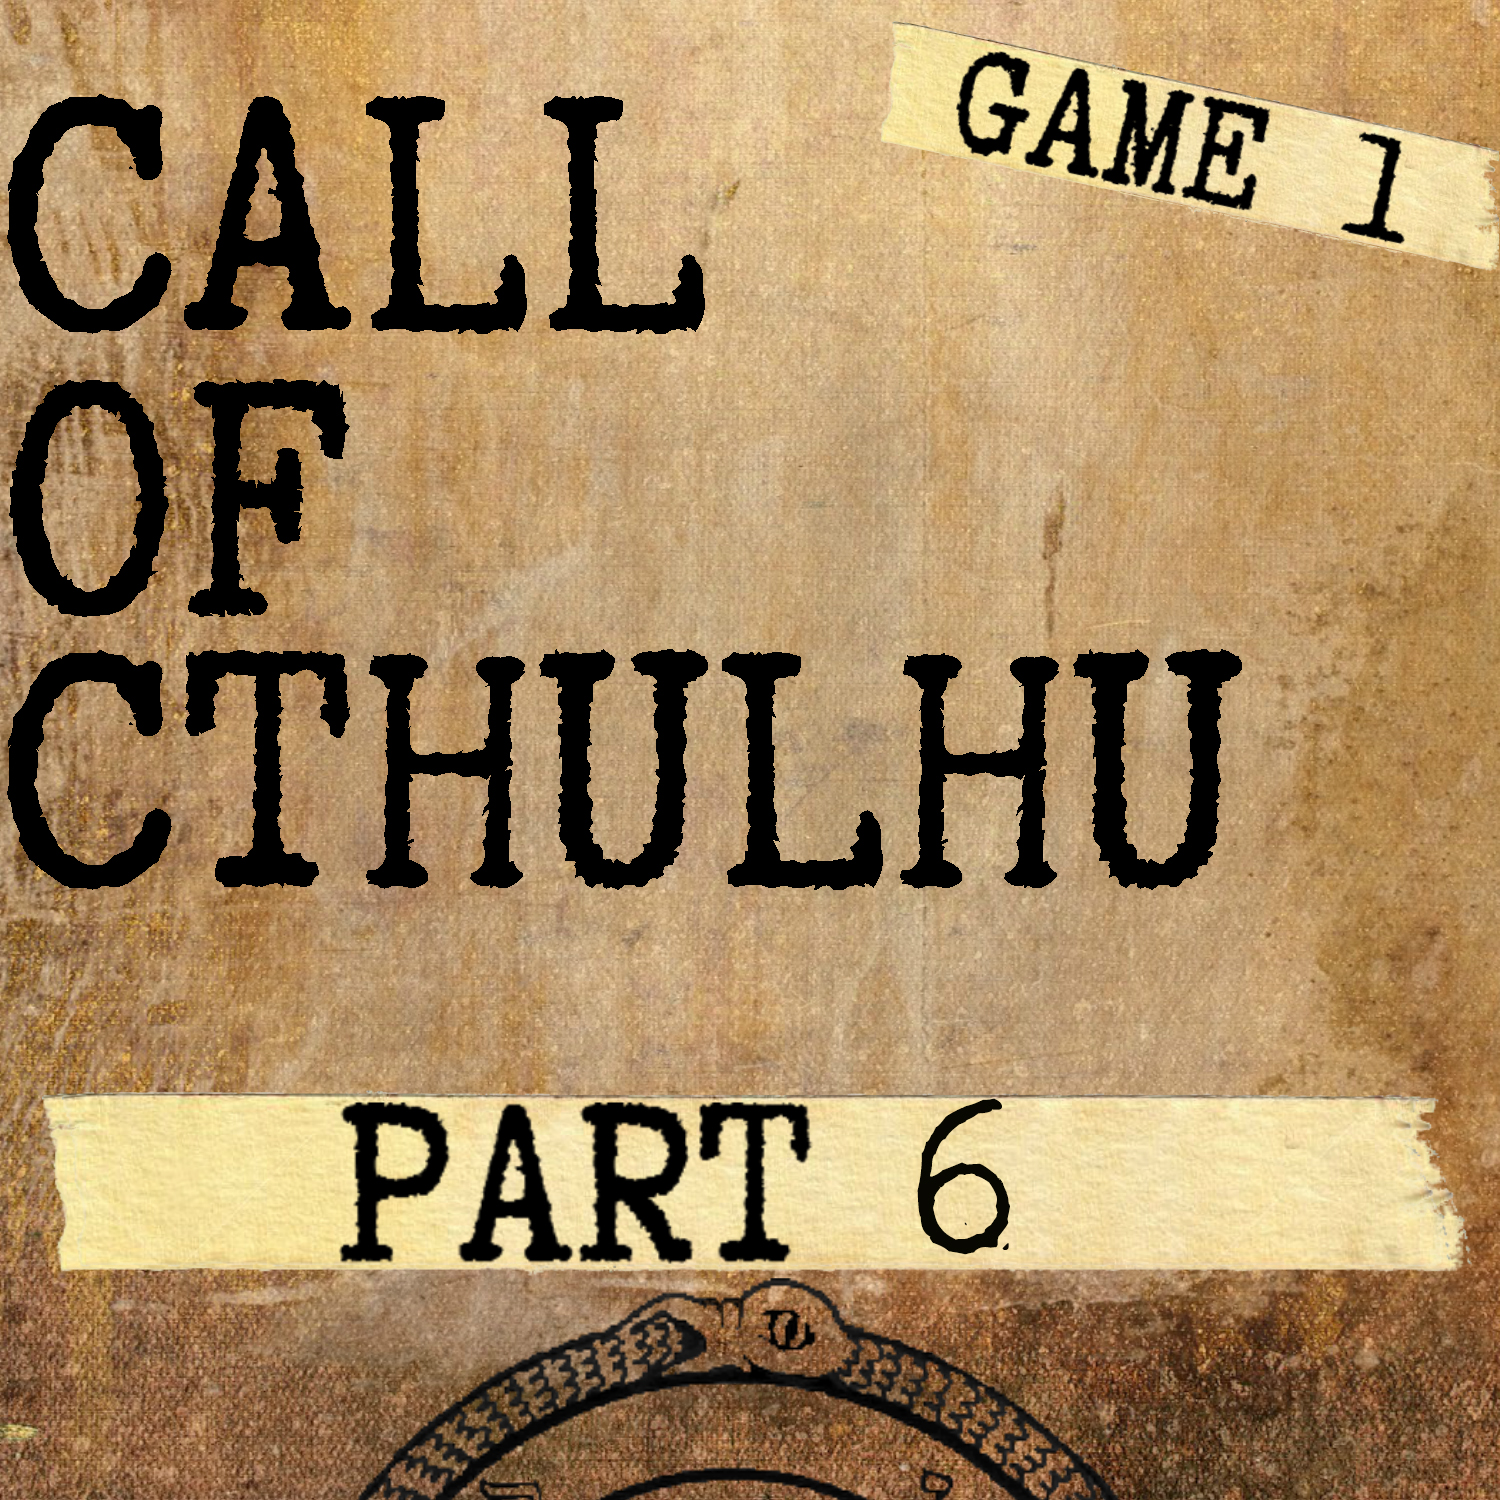 Artwork for Call of Cthulhu - Game 1: Part 6